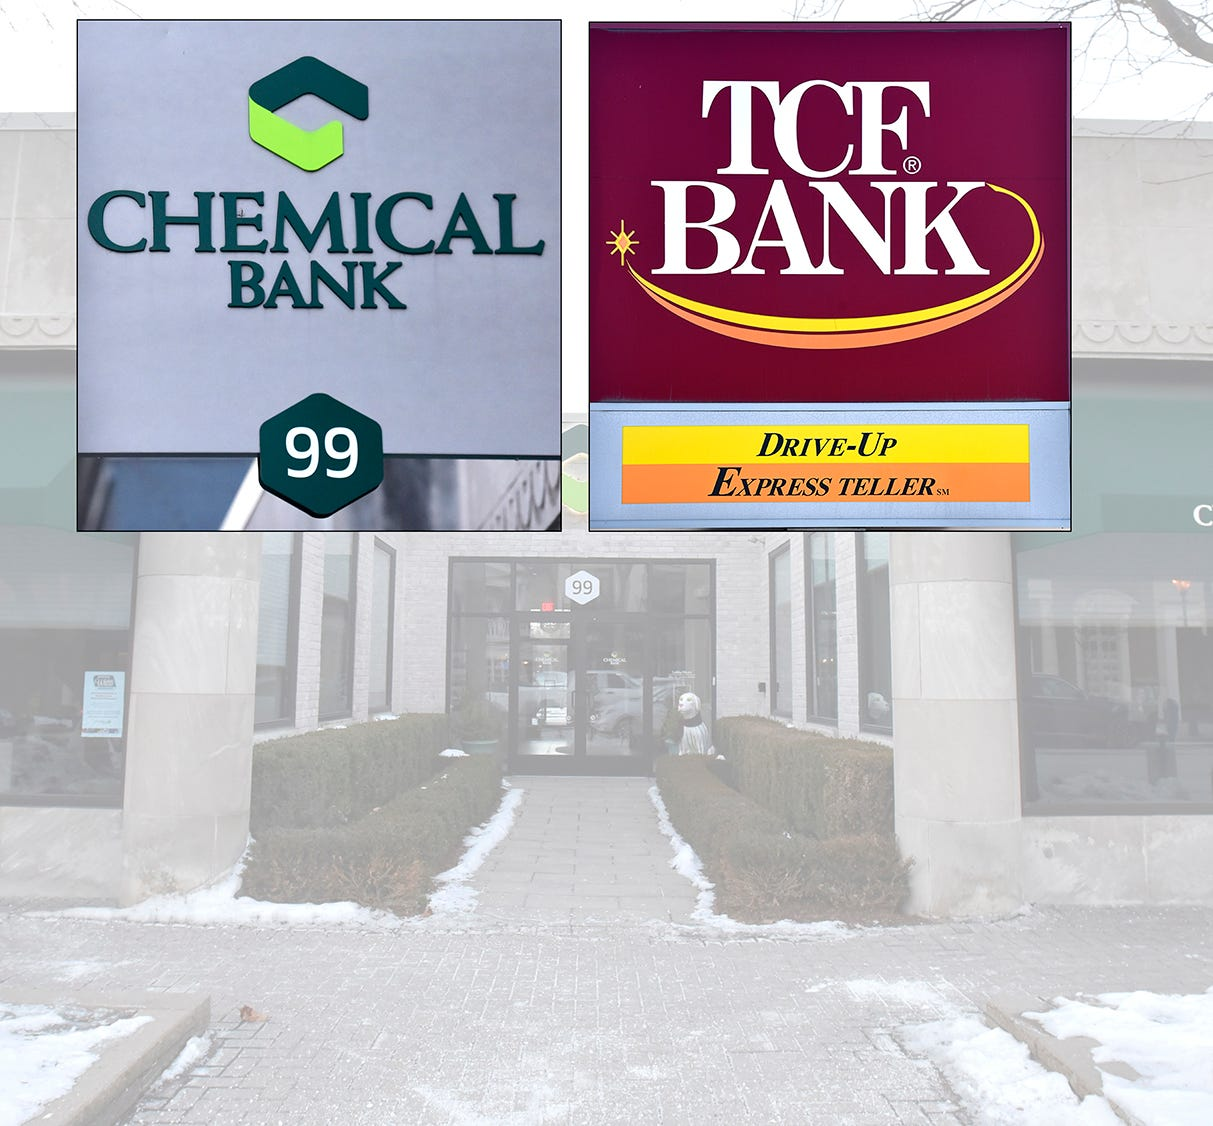 Chemical Bank and TCF Bank